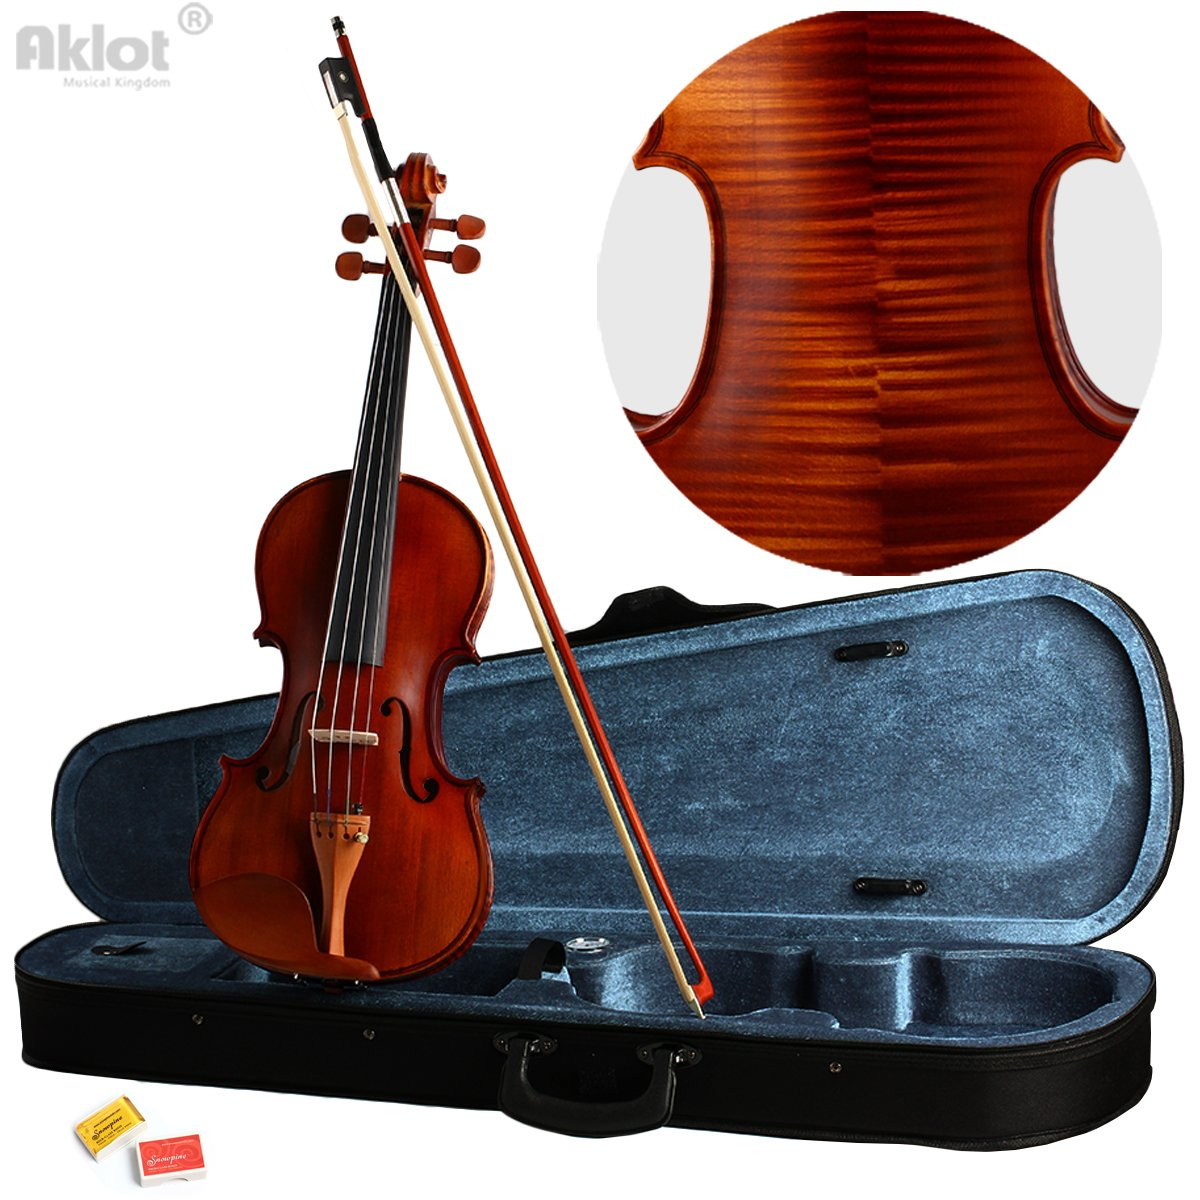 Aklot Vilolin 4/4 Full Size Fiddle Antique Natural Acoustic Solid Wood With Case Bow Rosin New Ltd